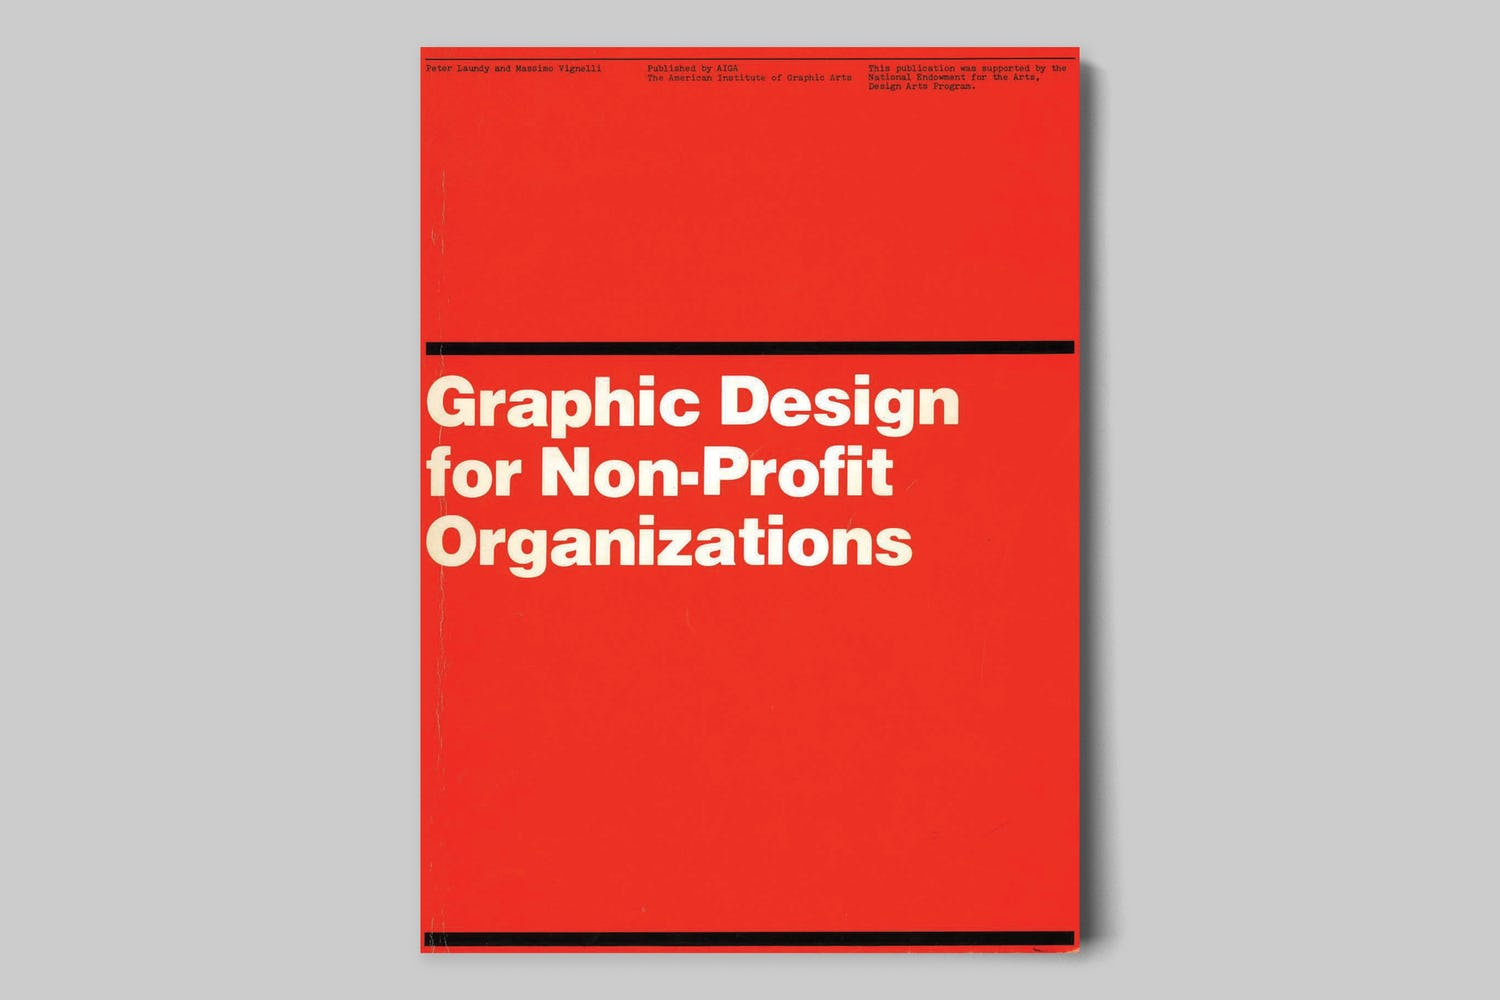 rationale resources vignelli non-profit organizations manual cover